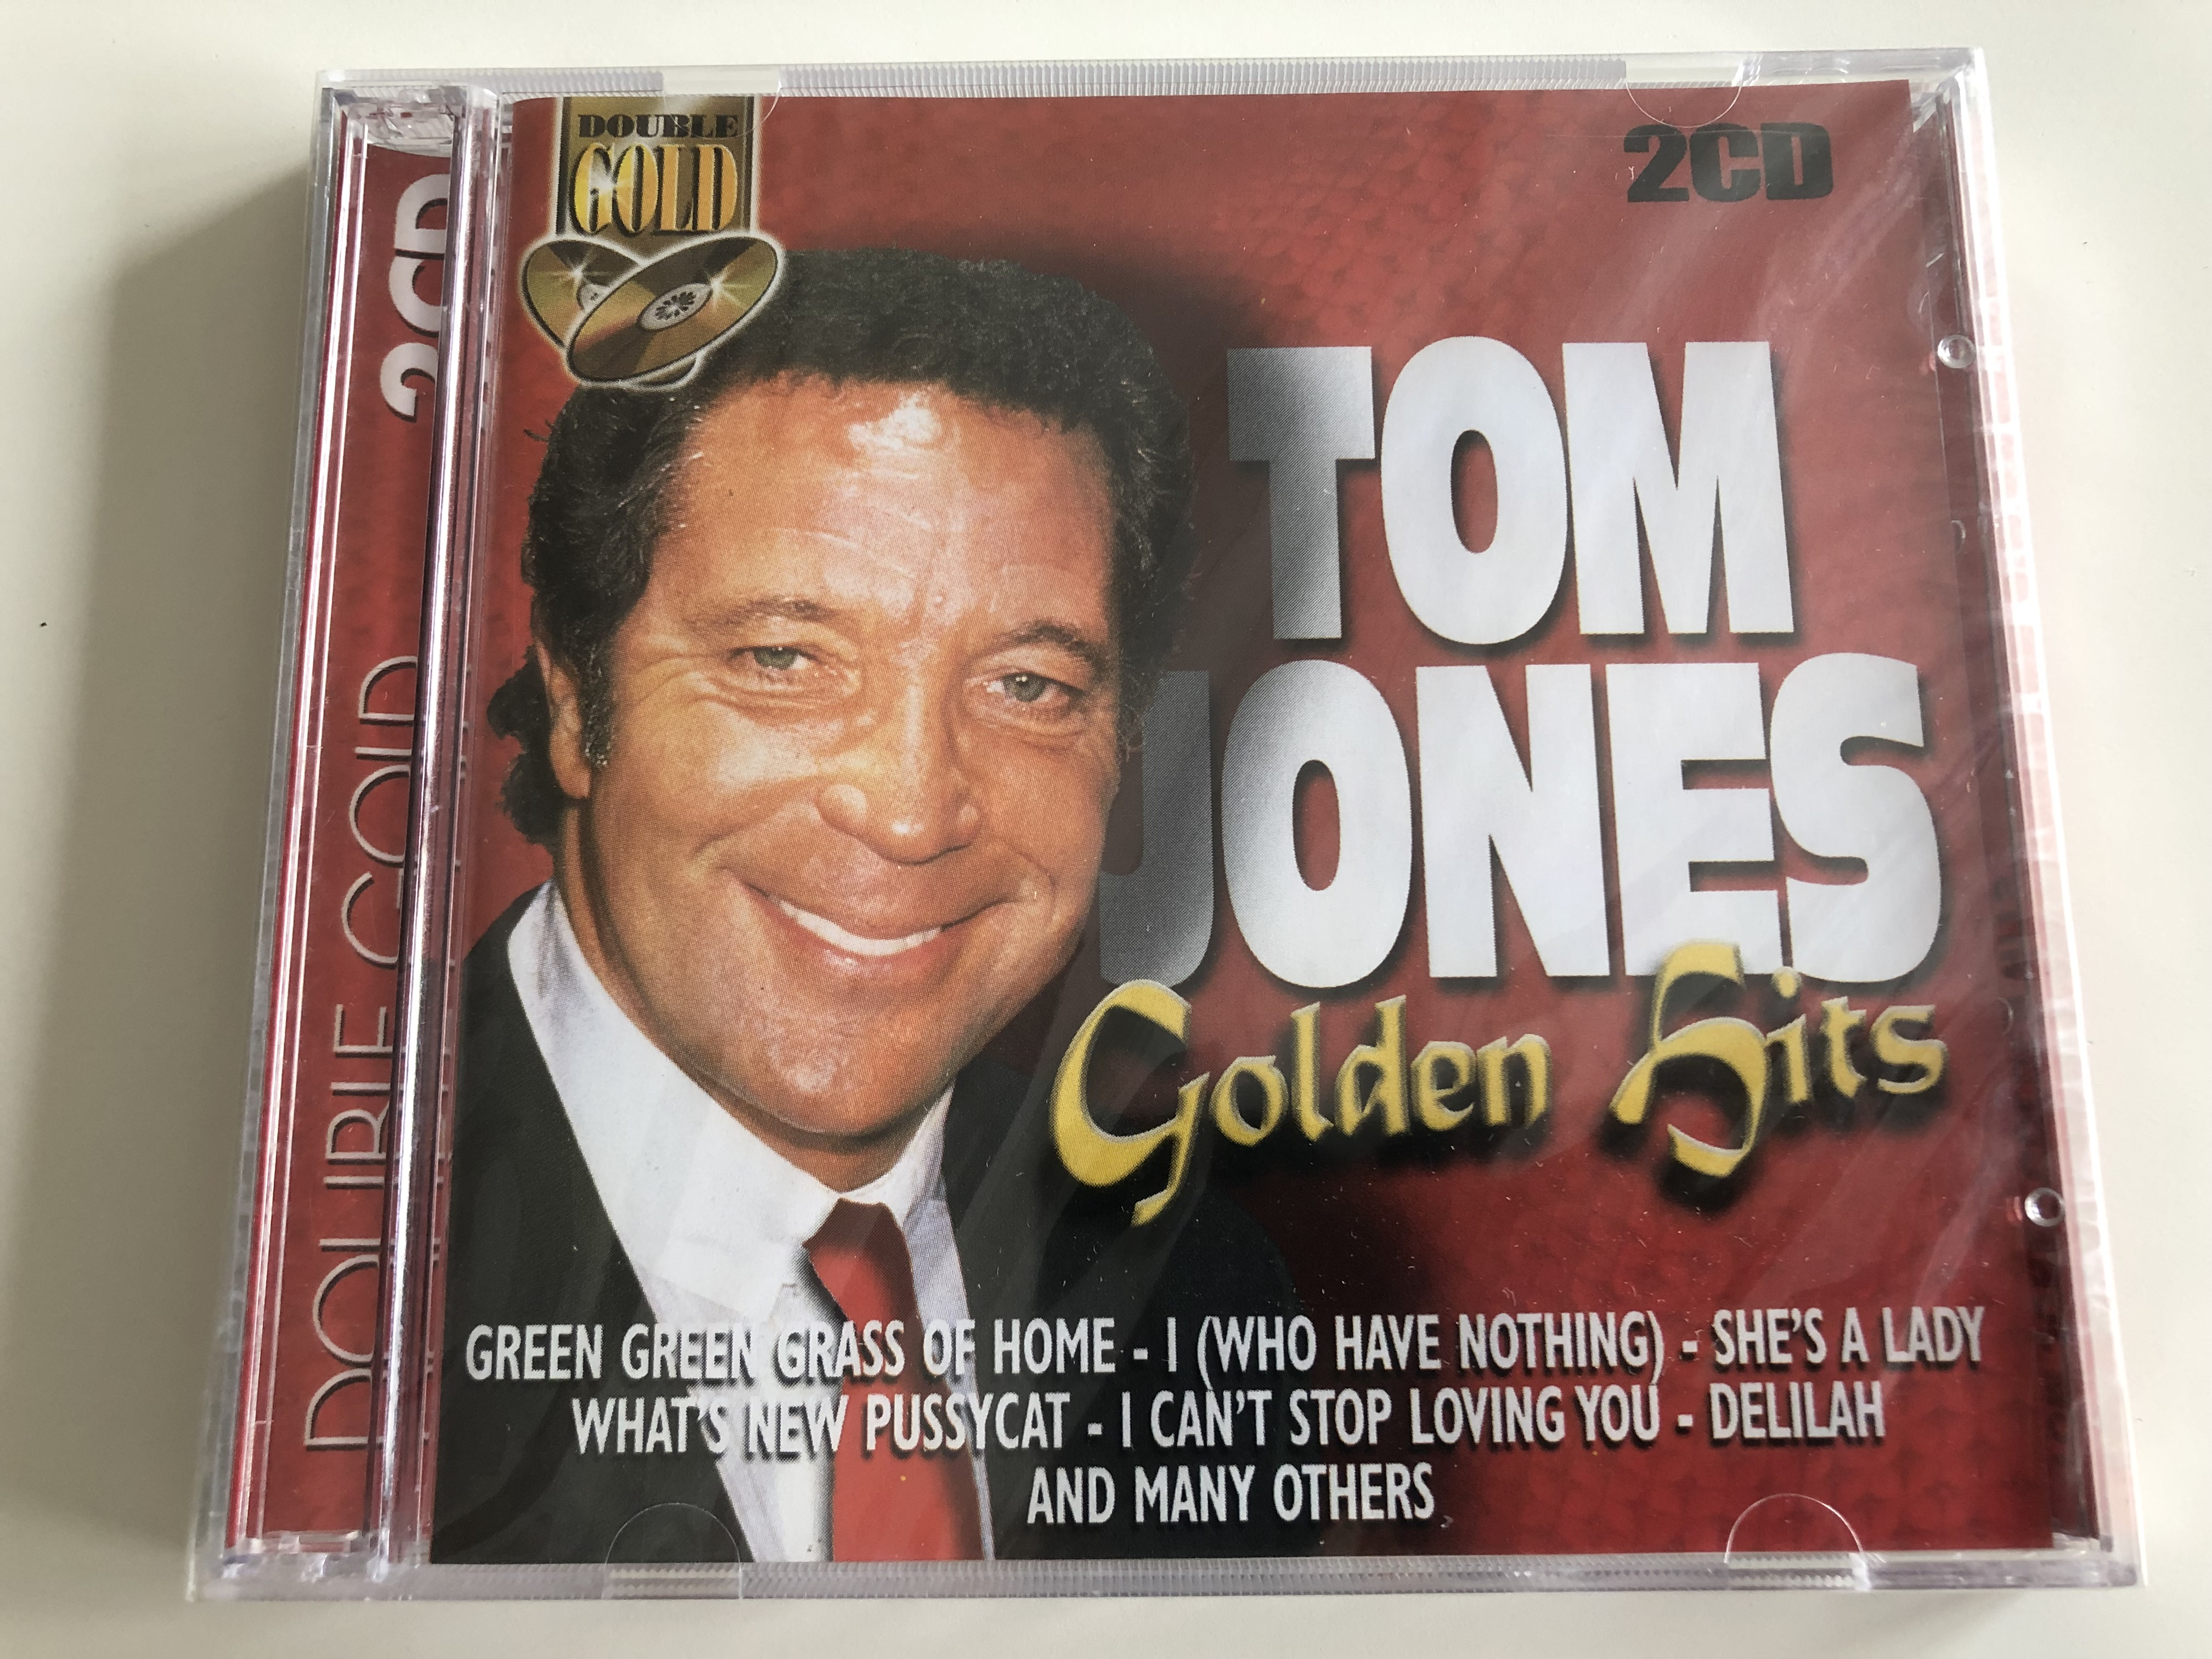 tom-jones-golden-hits-green-green-grass-of-home-i-who-have-nothing-she-s-a-lady-double-gold-2-cd-1701392-1-.jpg